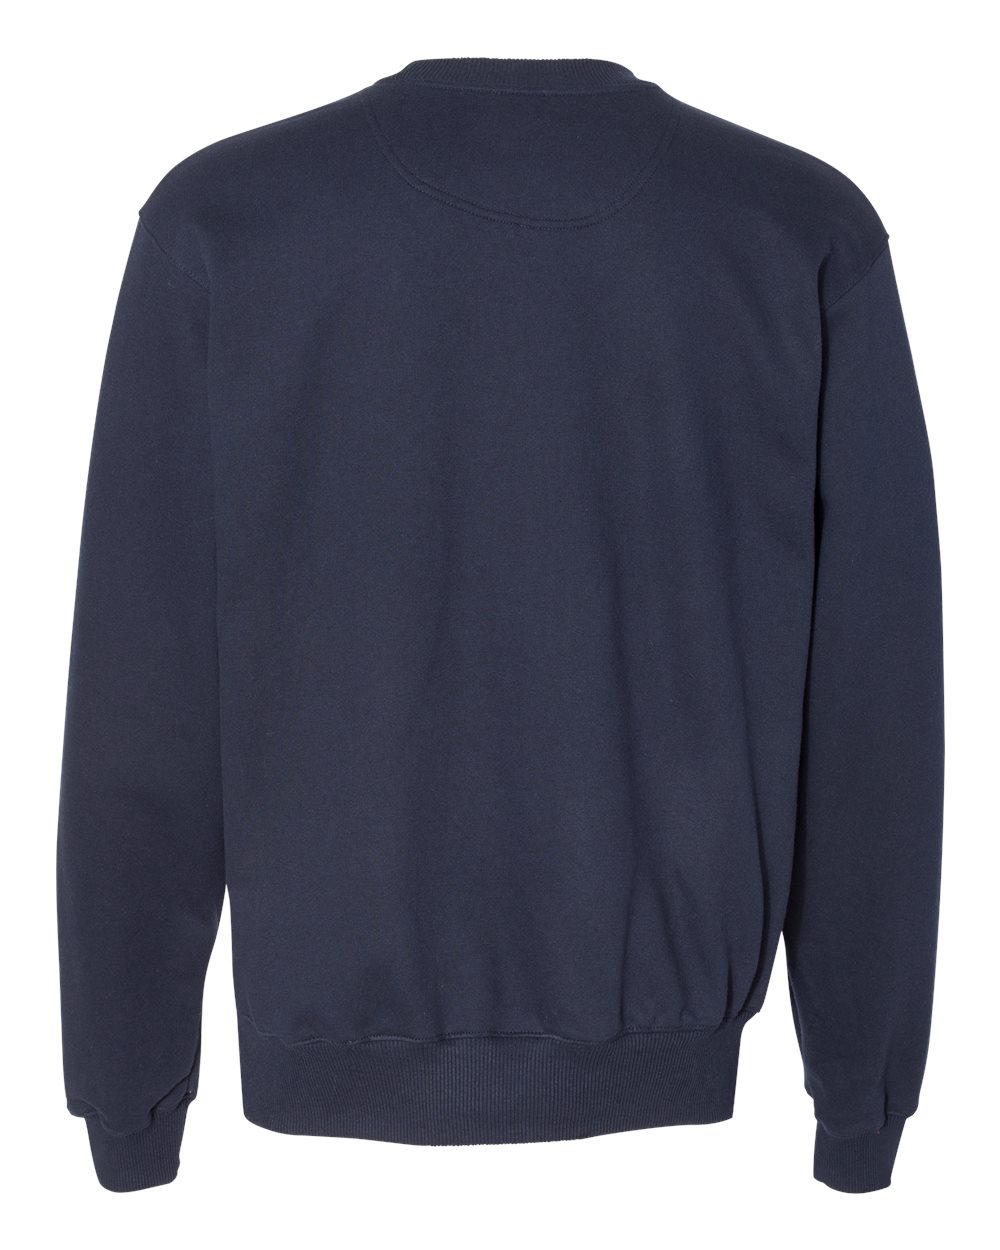 Champion-Mens-Cotton-Max-Crewneck-Sweatshirt-Pullover-S178-up-to-3XL miniature 13